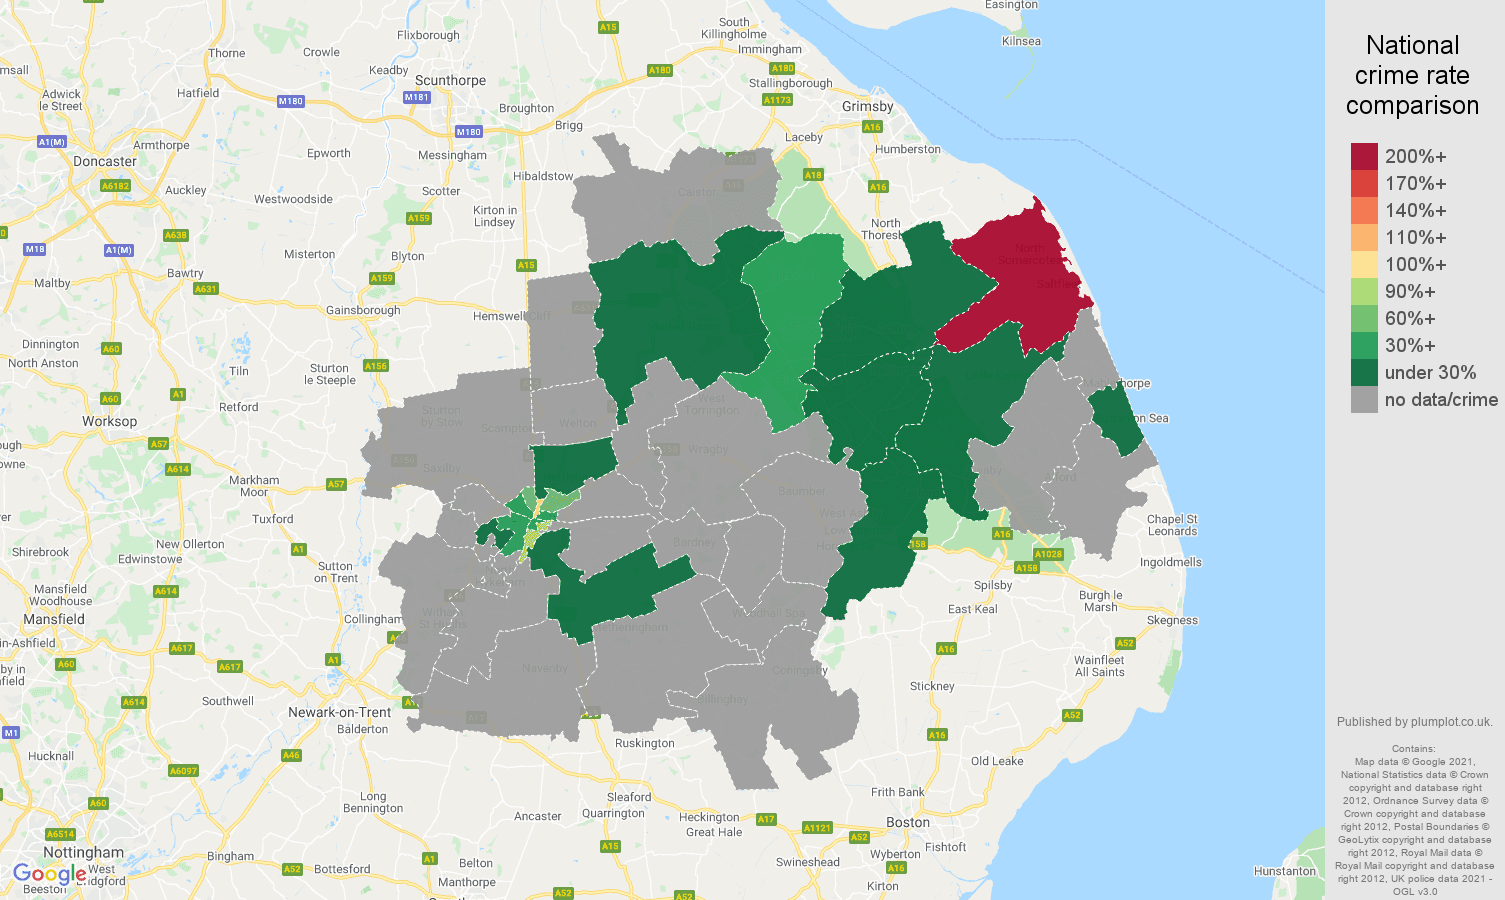 Lincoln theft from the person crime rate comparison map